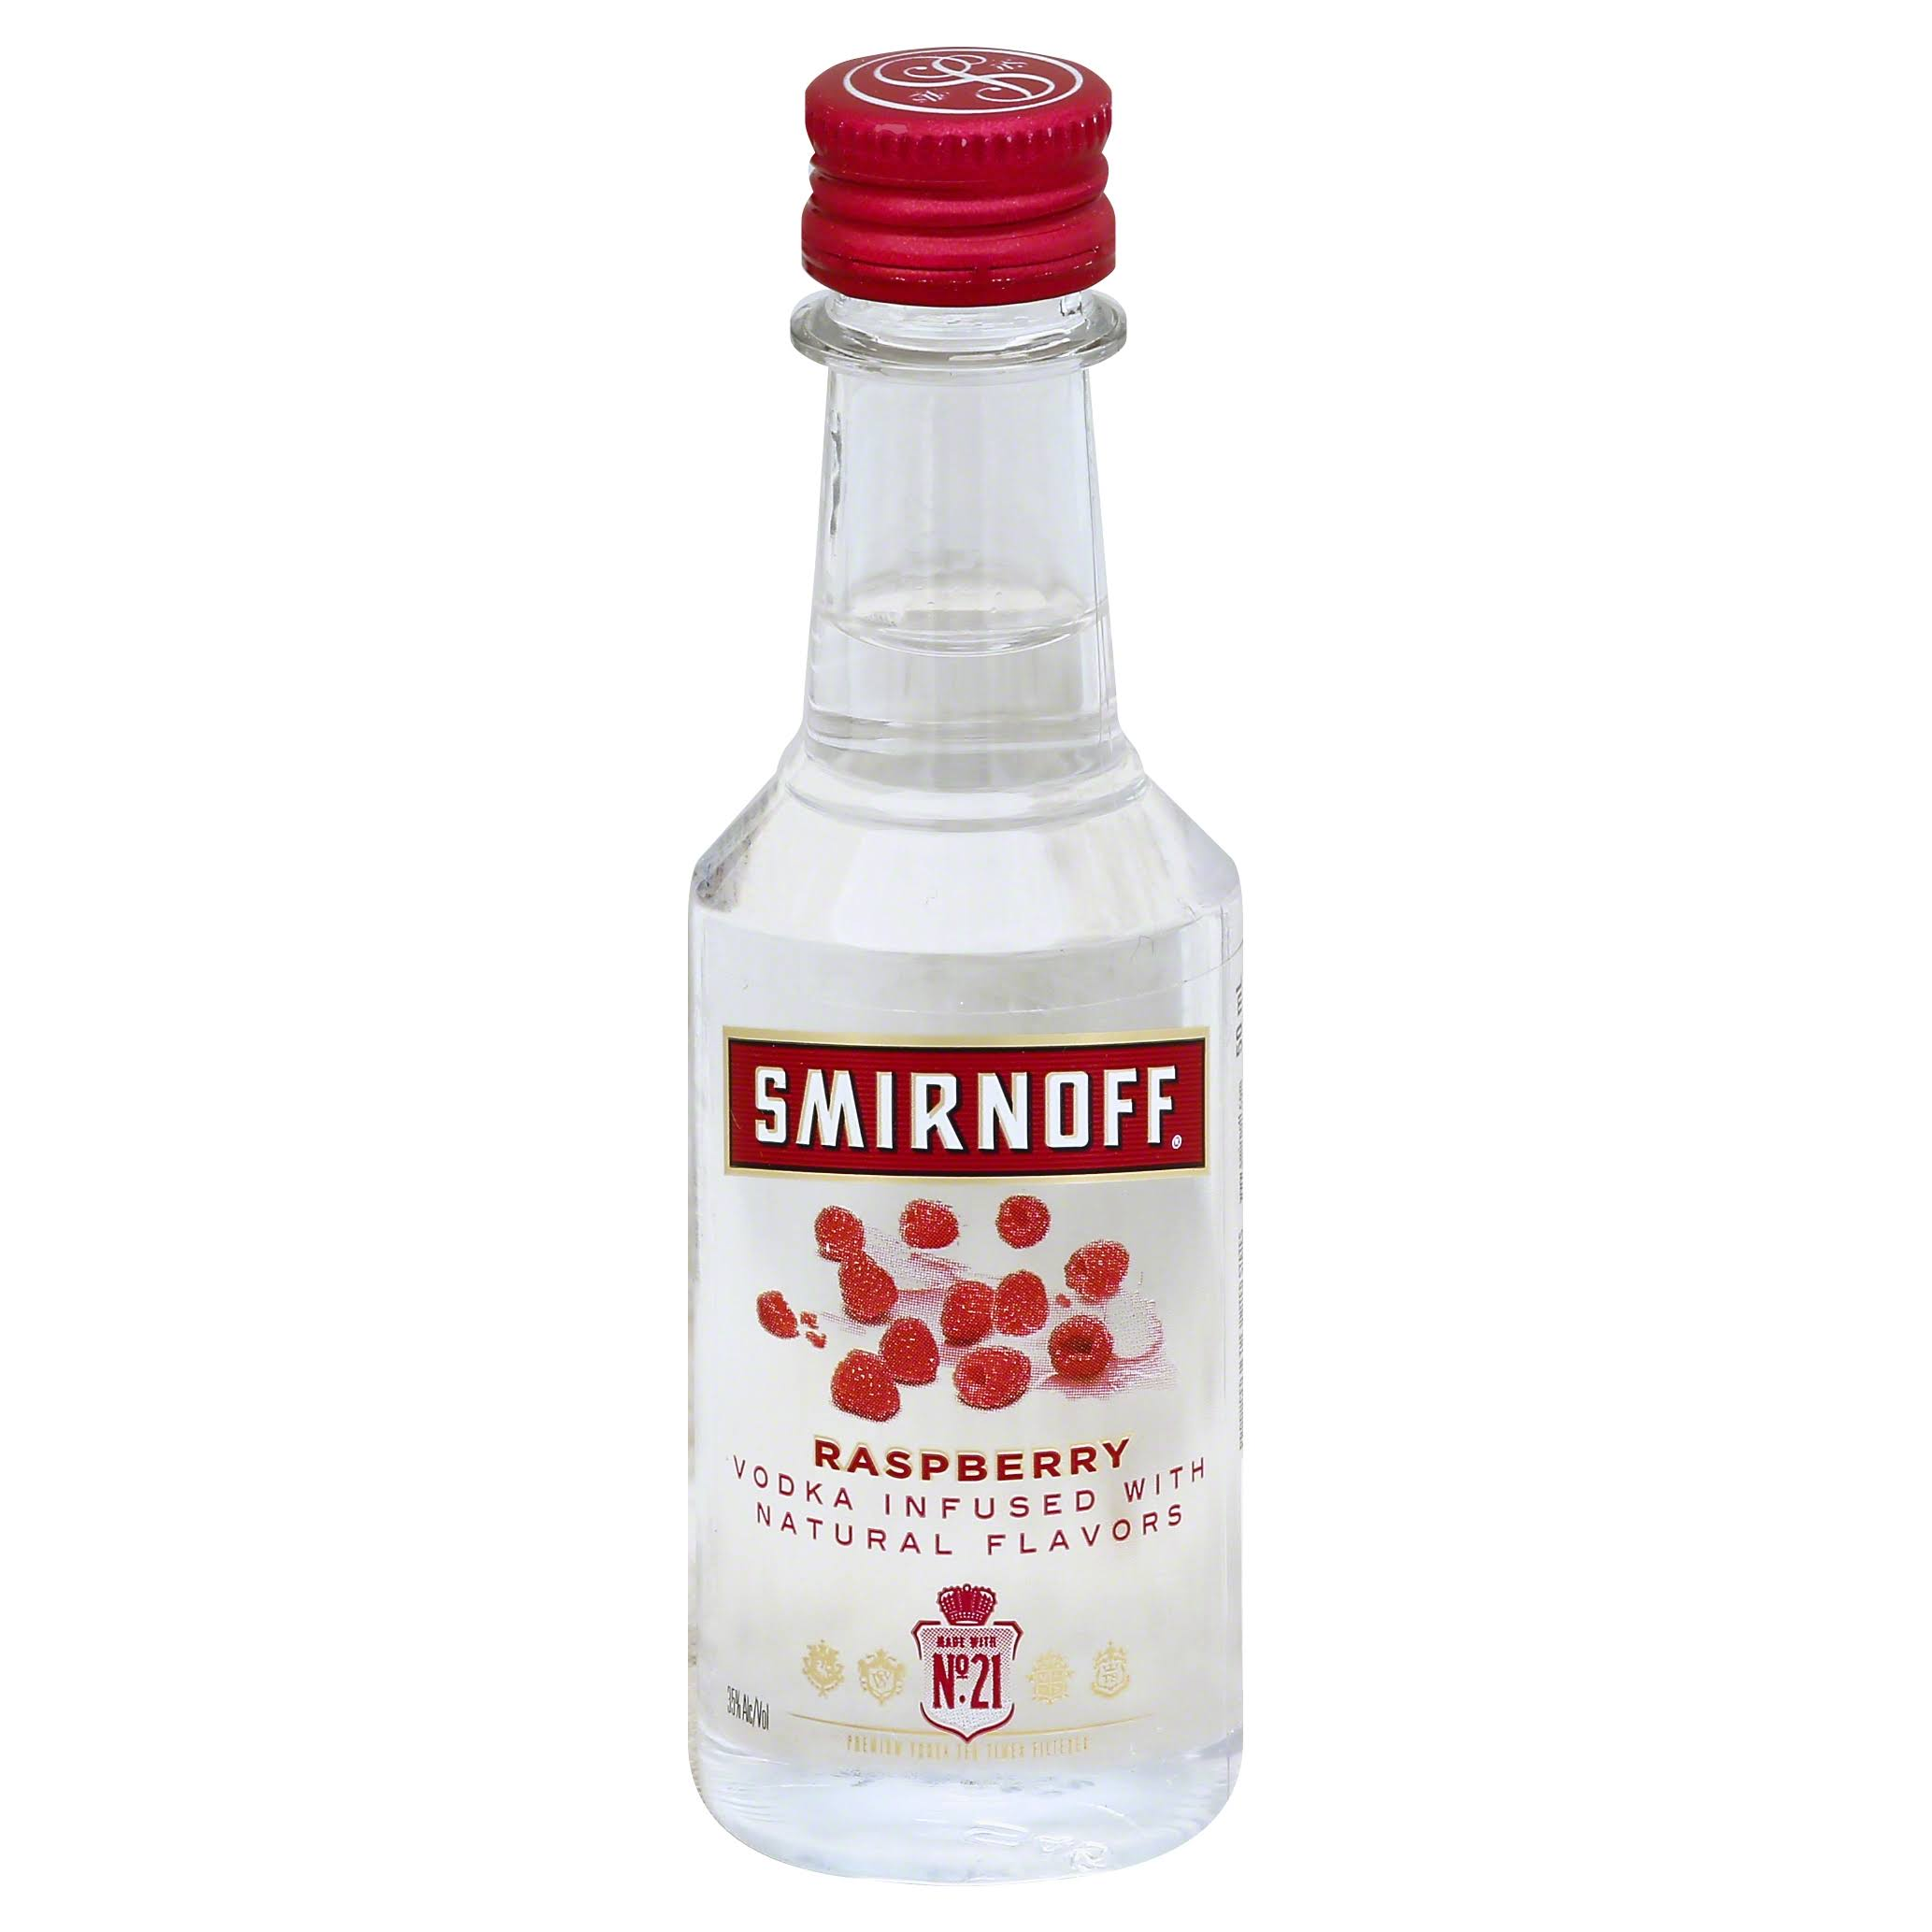 Smirnoff Raspberry Twist Vodka - 50 ml bottle